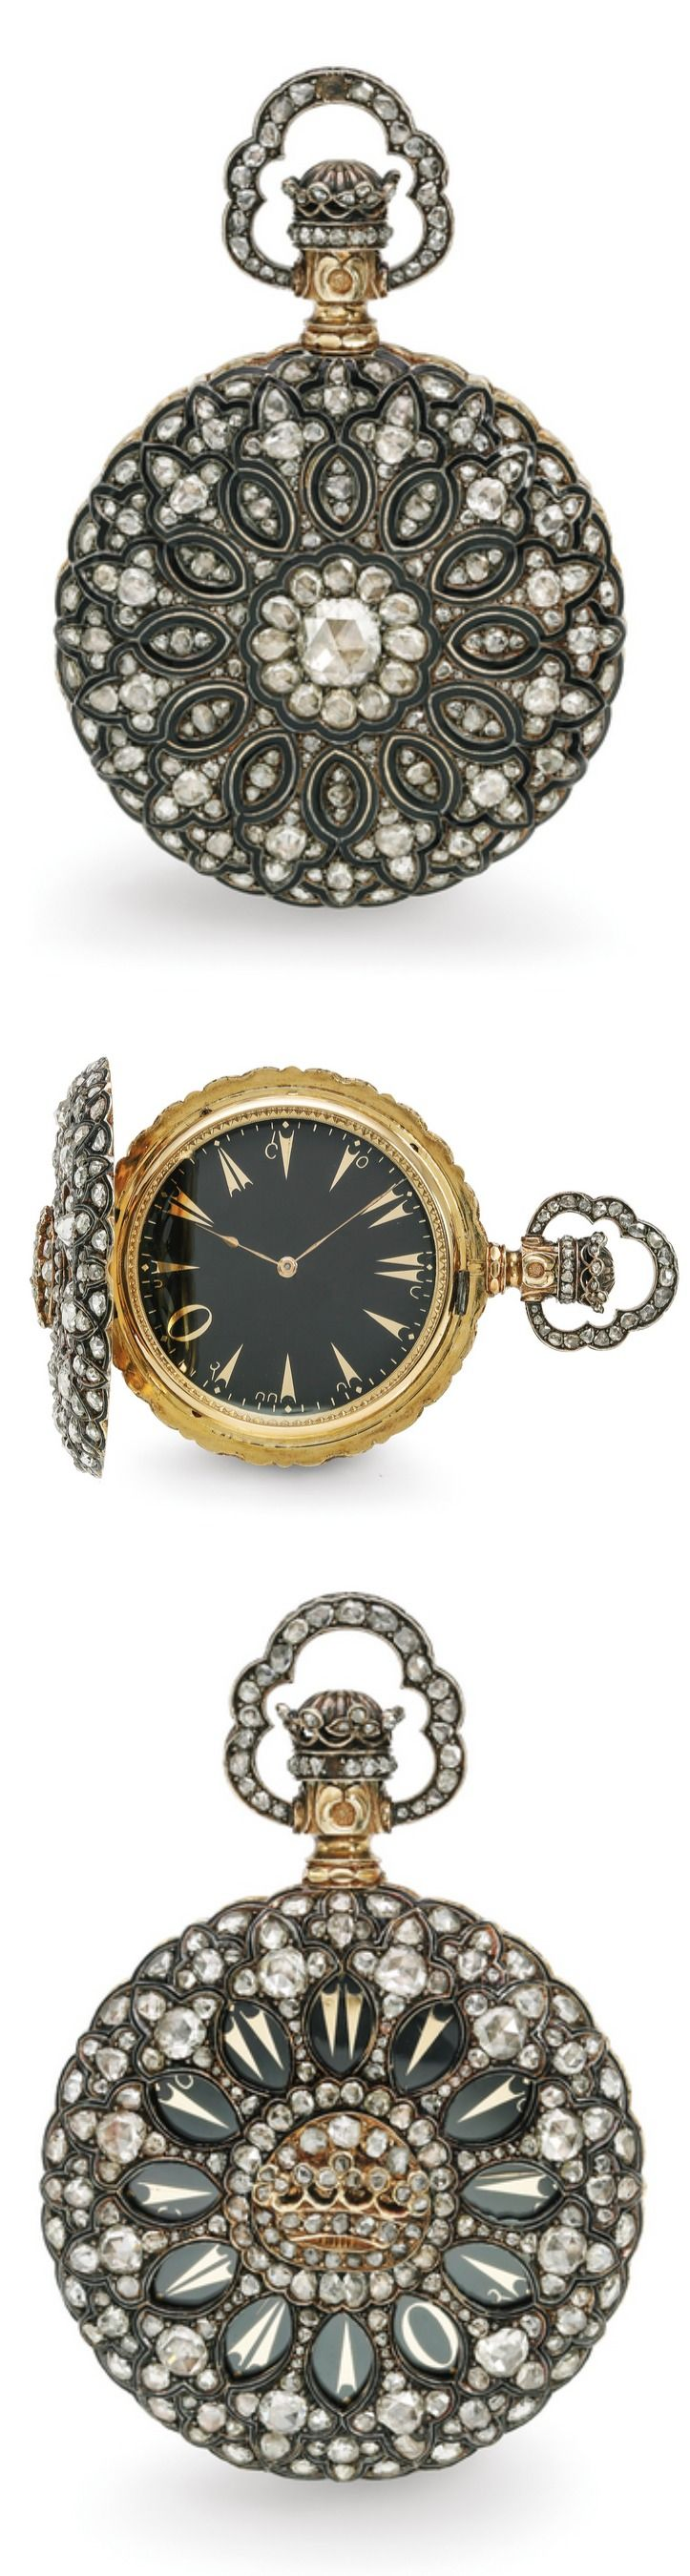 Swiss A VERY FINE AND RARE YELLOW GOLD AND DIAMOND-SET HALF-HUNTER CASED KEYLESS WATCH MADE FOR THE TURKISH MARKET NO 1082 CIRCA 1890 • manual winding jewelled nickel silver lever movement, cut bi-metallic compensation balance, wolf's teeth winding mechanism, pink gold wheels • hinged gold cuvette • black dial, gilt Turkish numerals • 18k yellow gold case fully set with rose-cut diamonds, small crown design to the centre of the front cover and to the winder • cuvette numbered